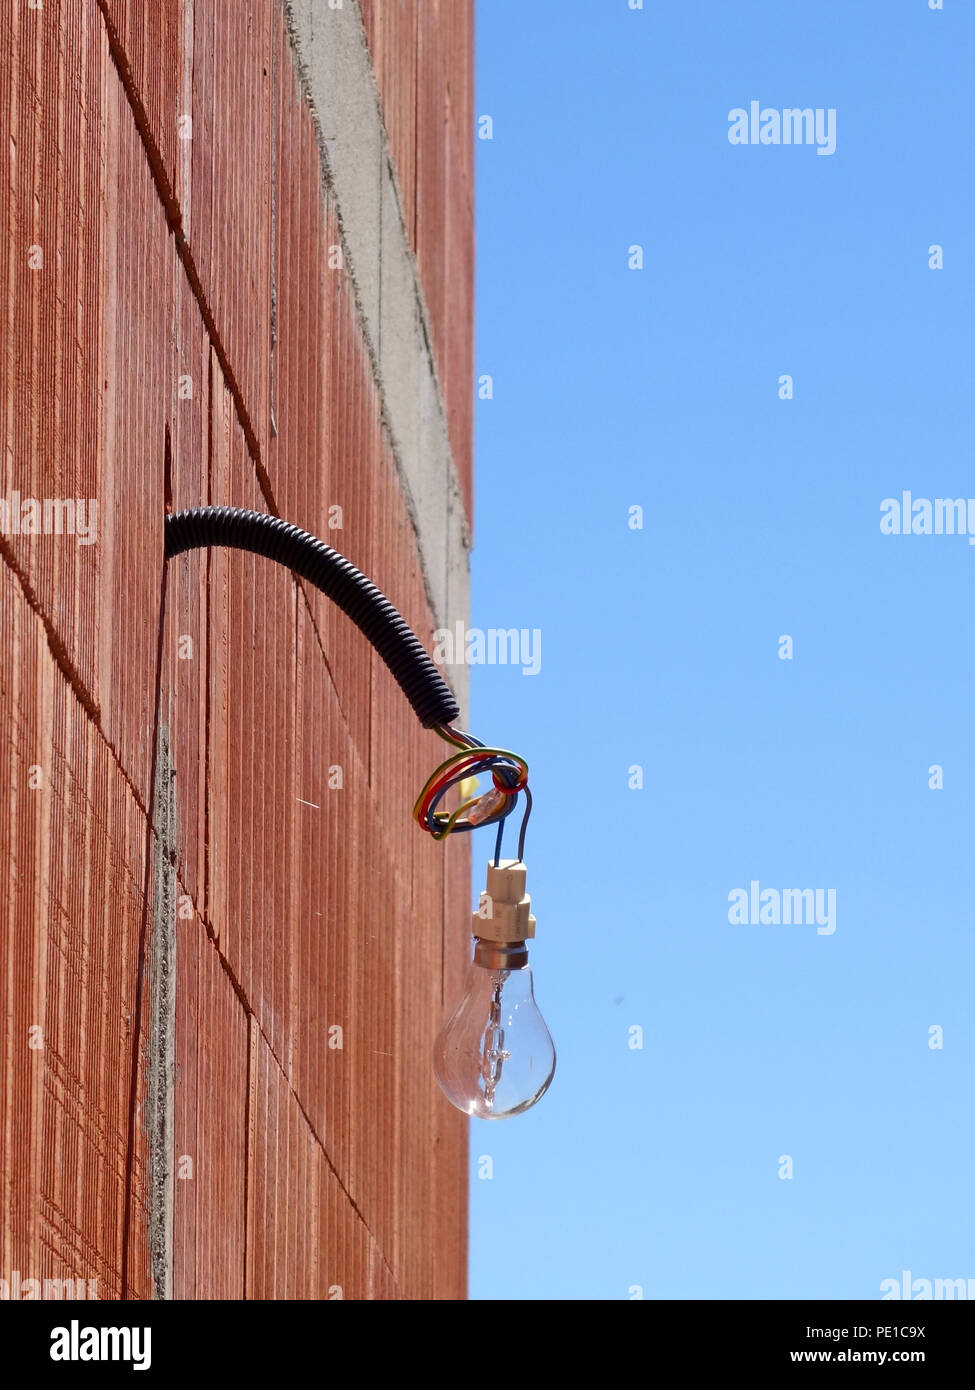 Lightbulb And Wire Shadow On Wall Stock Photos Exterior Wiring Cable Single Light Bulb Hanging From A The Of Newly Built At